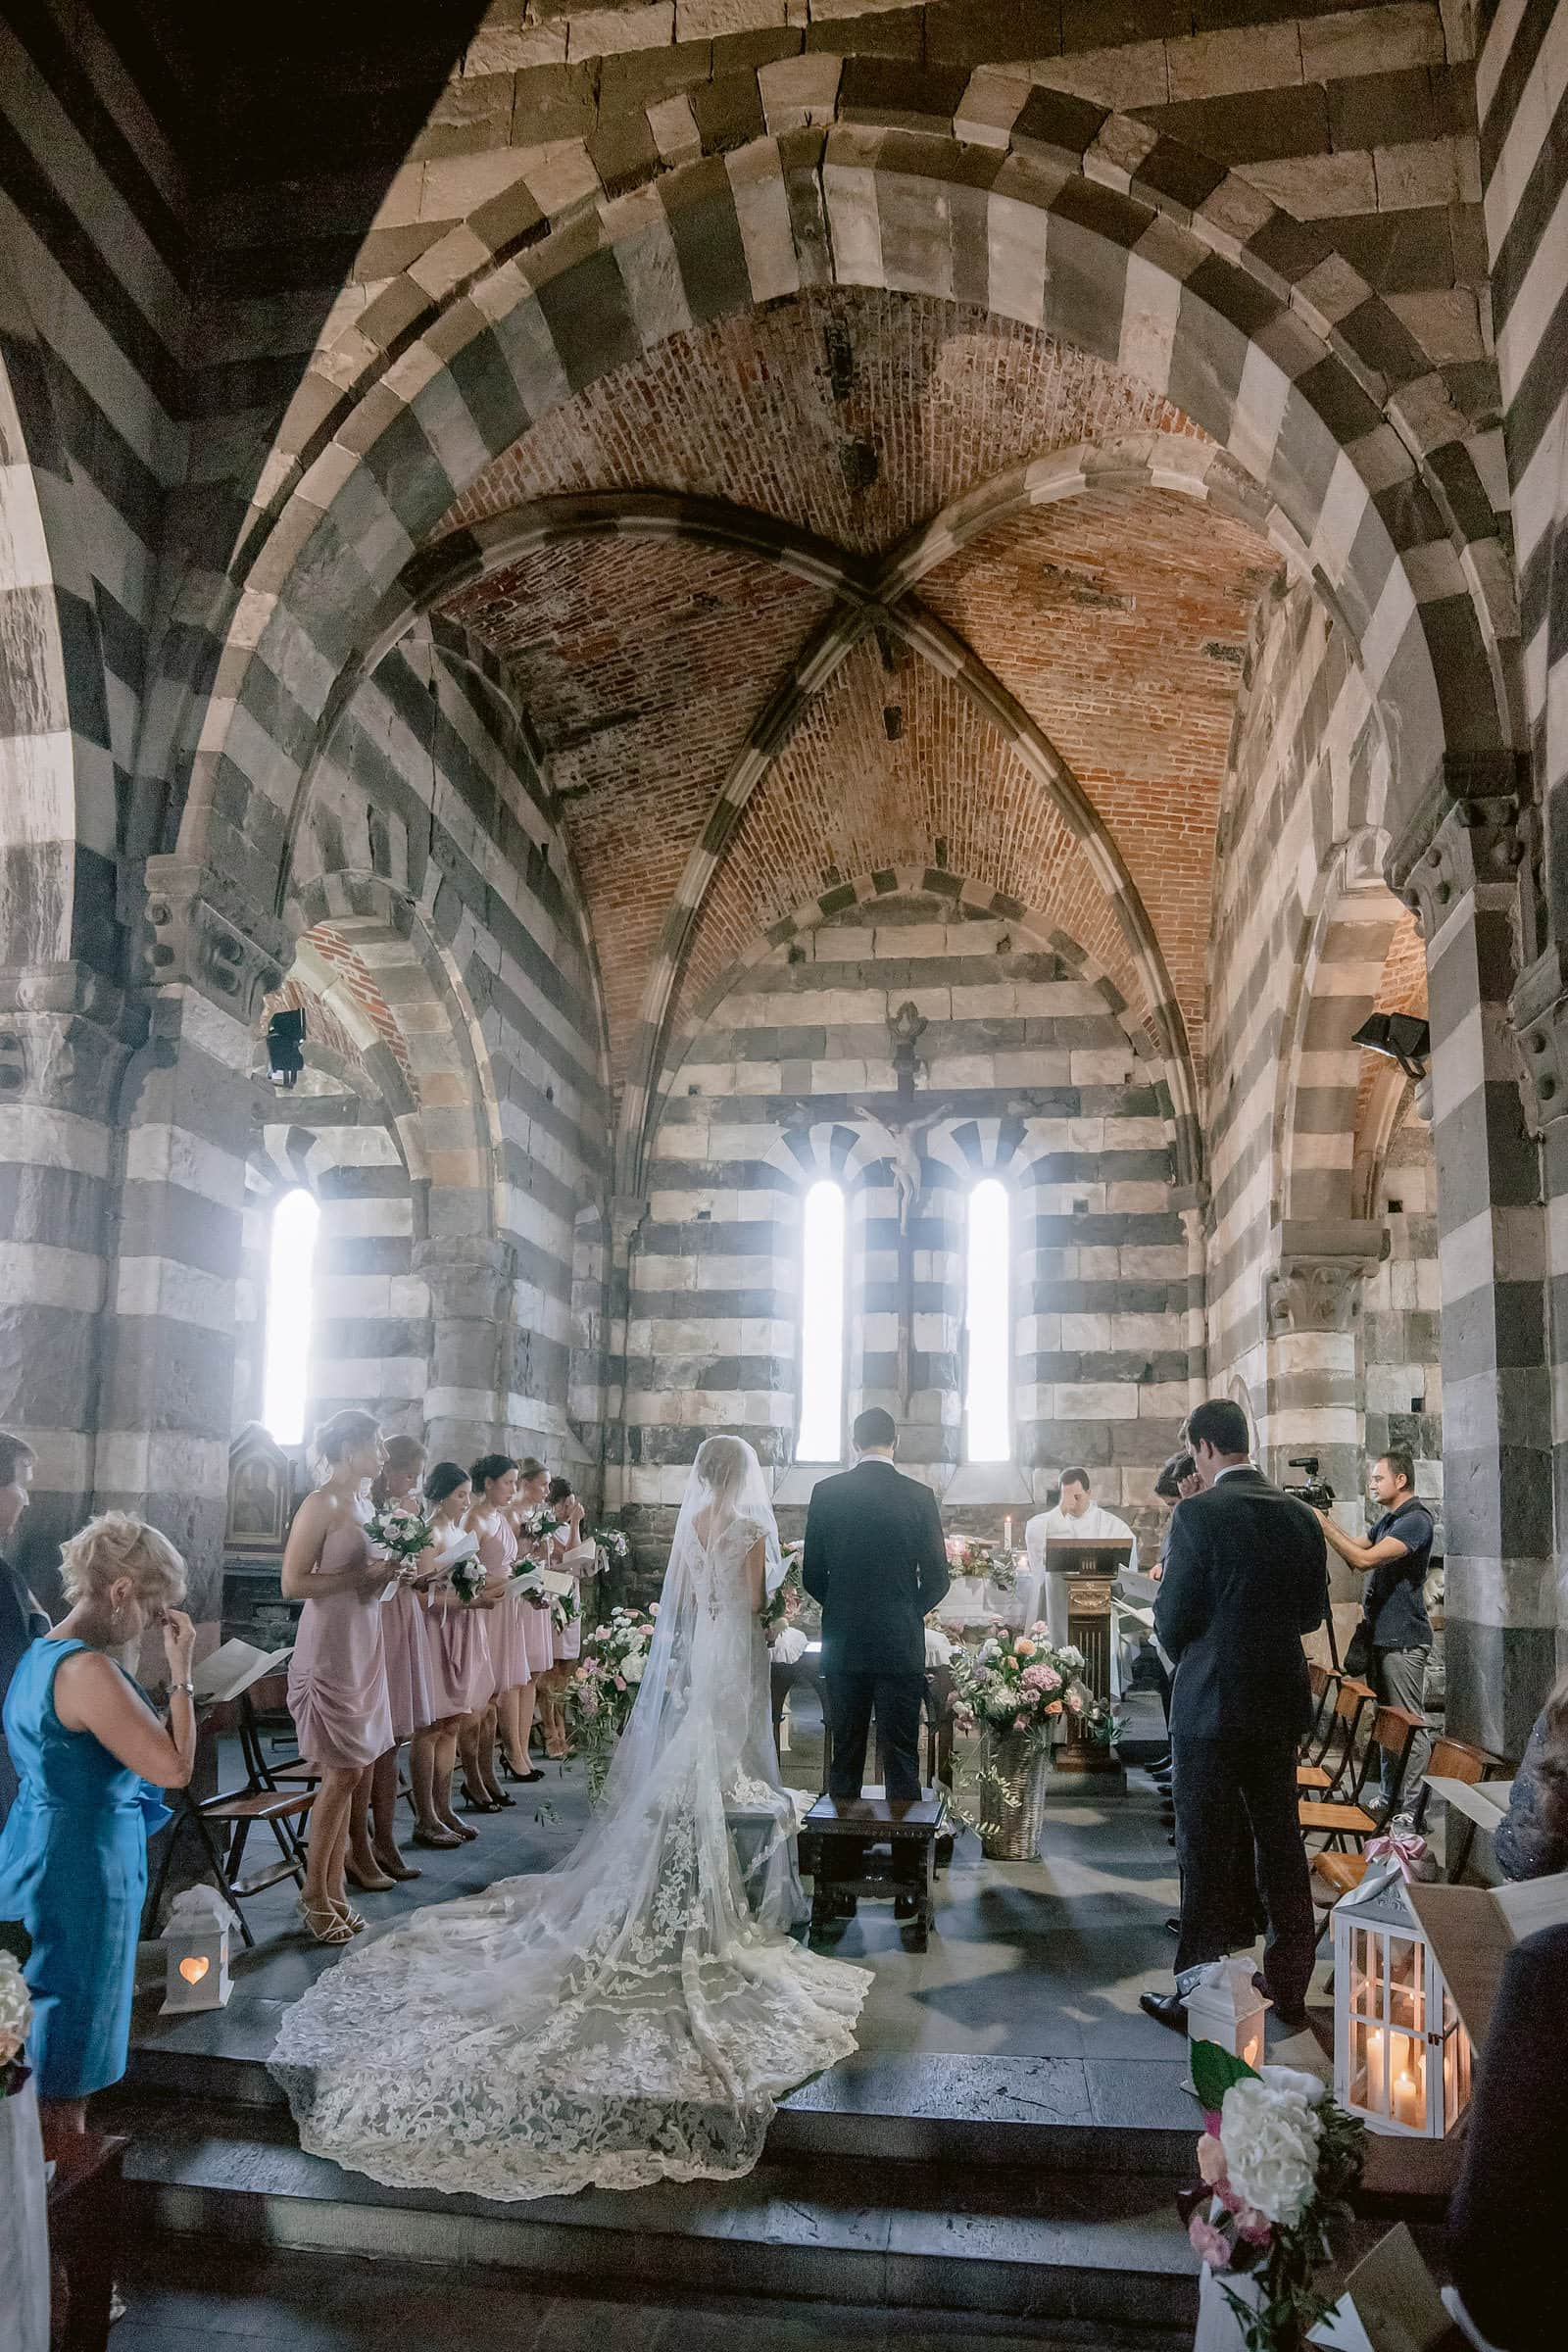 the altar of San Pietro church during a wedding ceremony